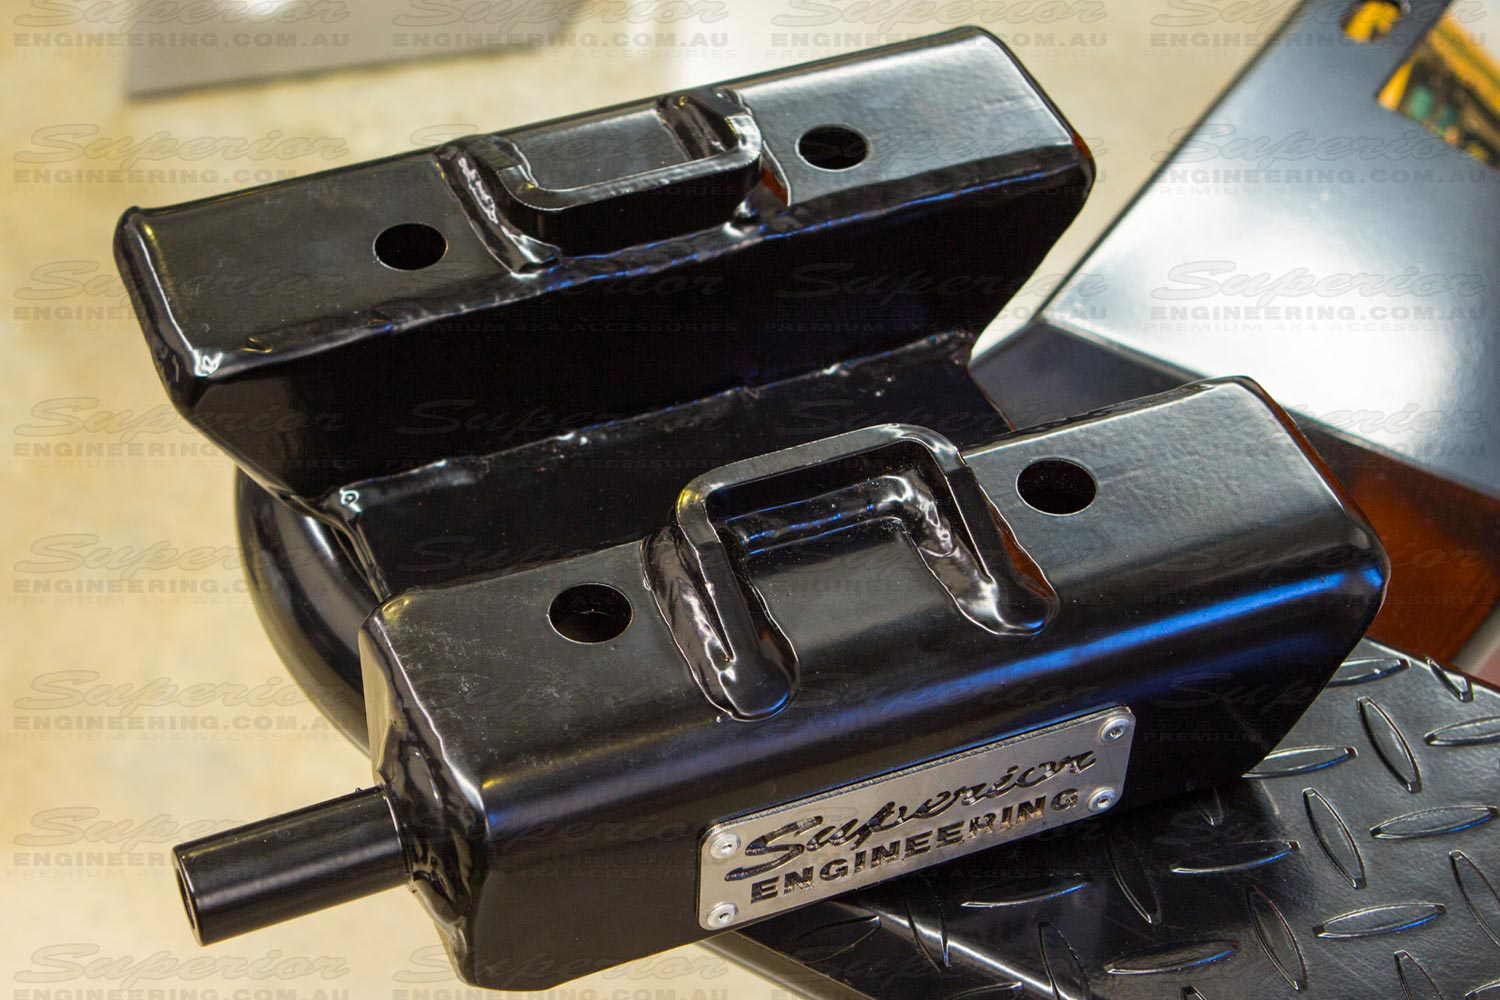 Side angle view of the Superior high clearance u-bolt plate